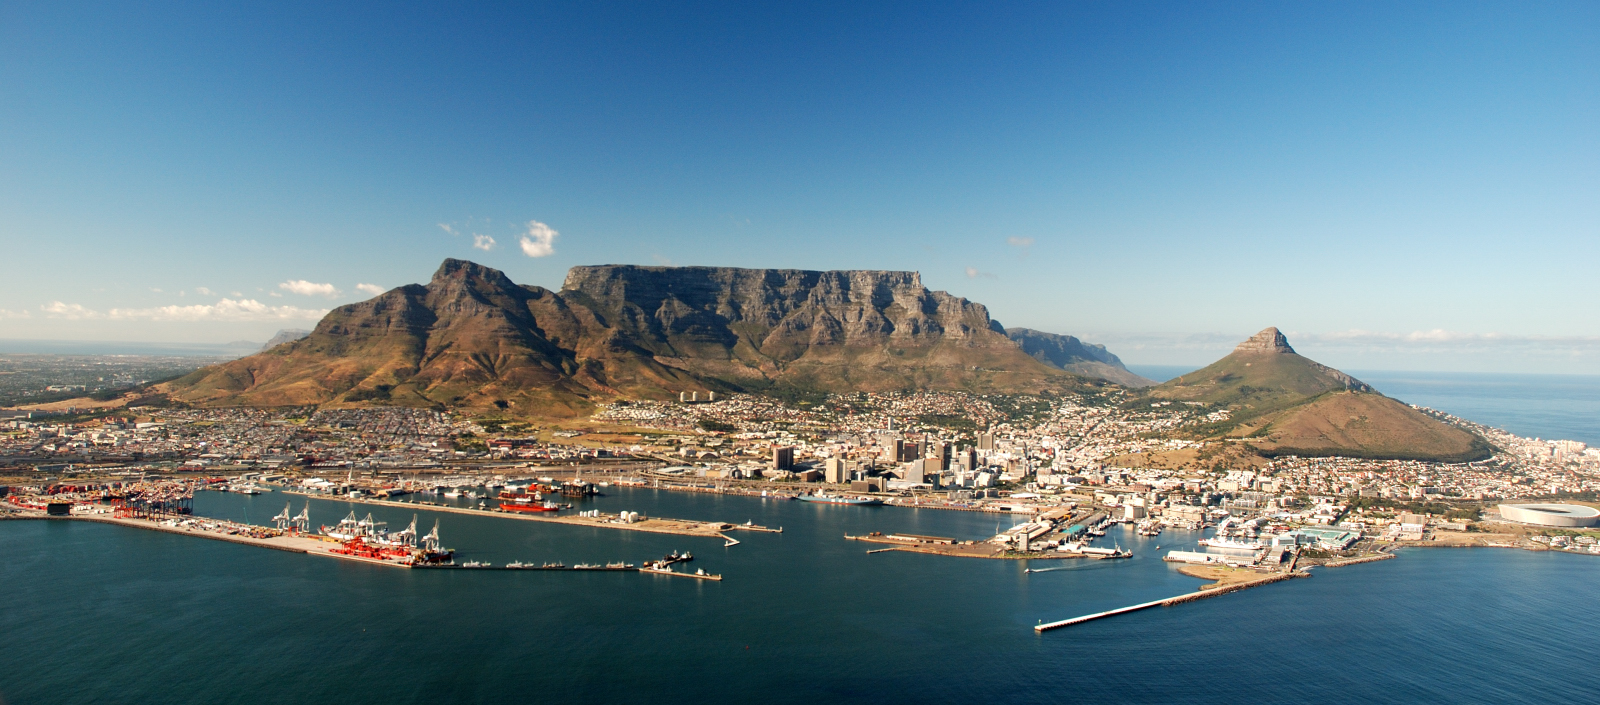 table mountain touring cape town car hires guide to sa